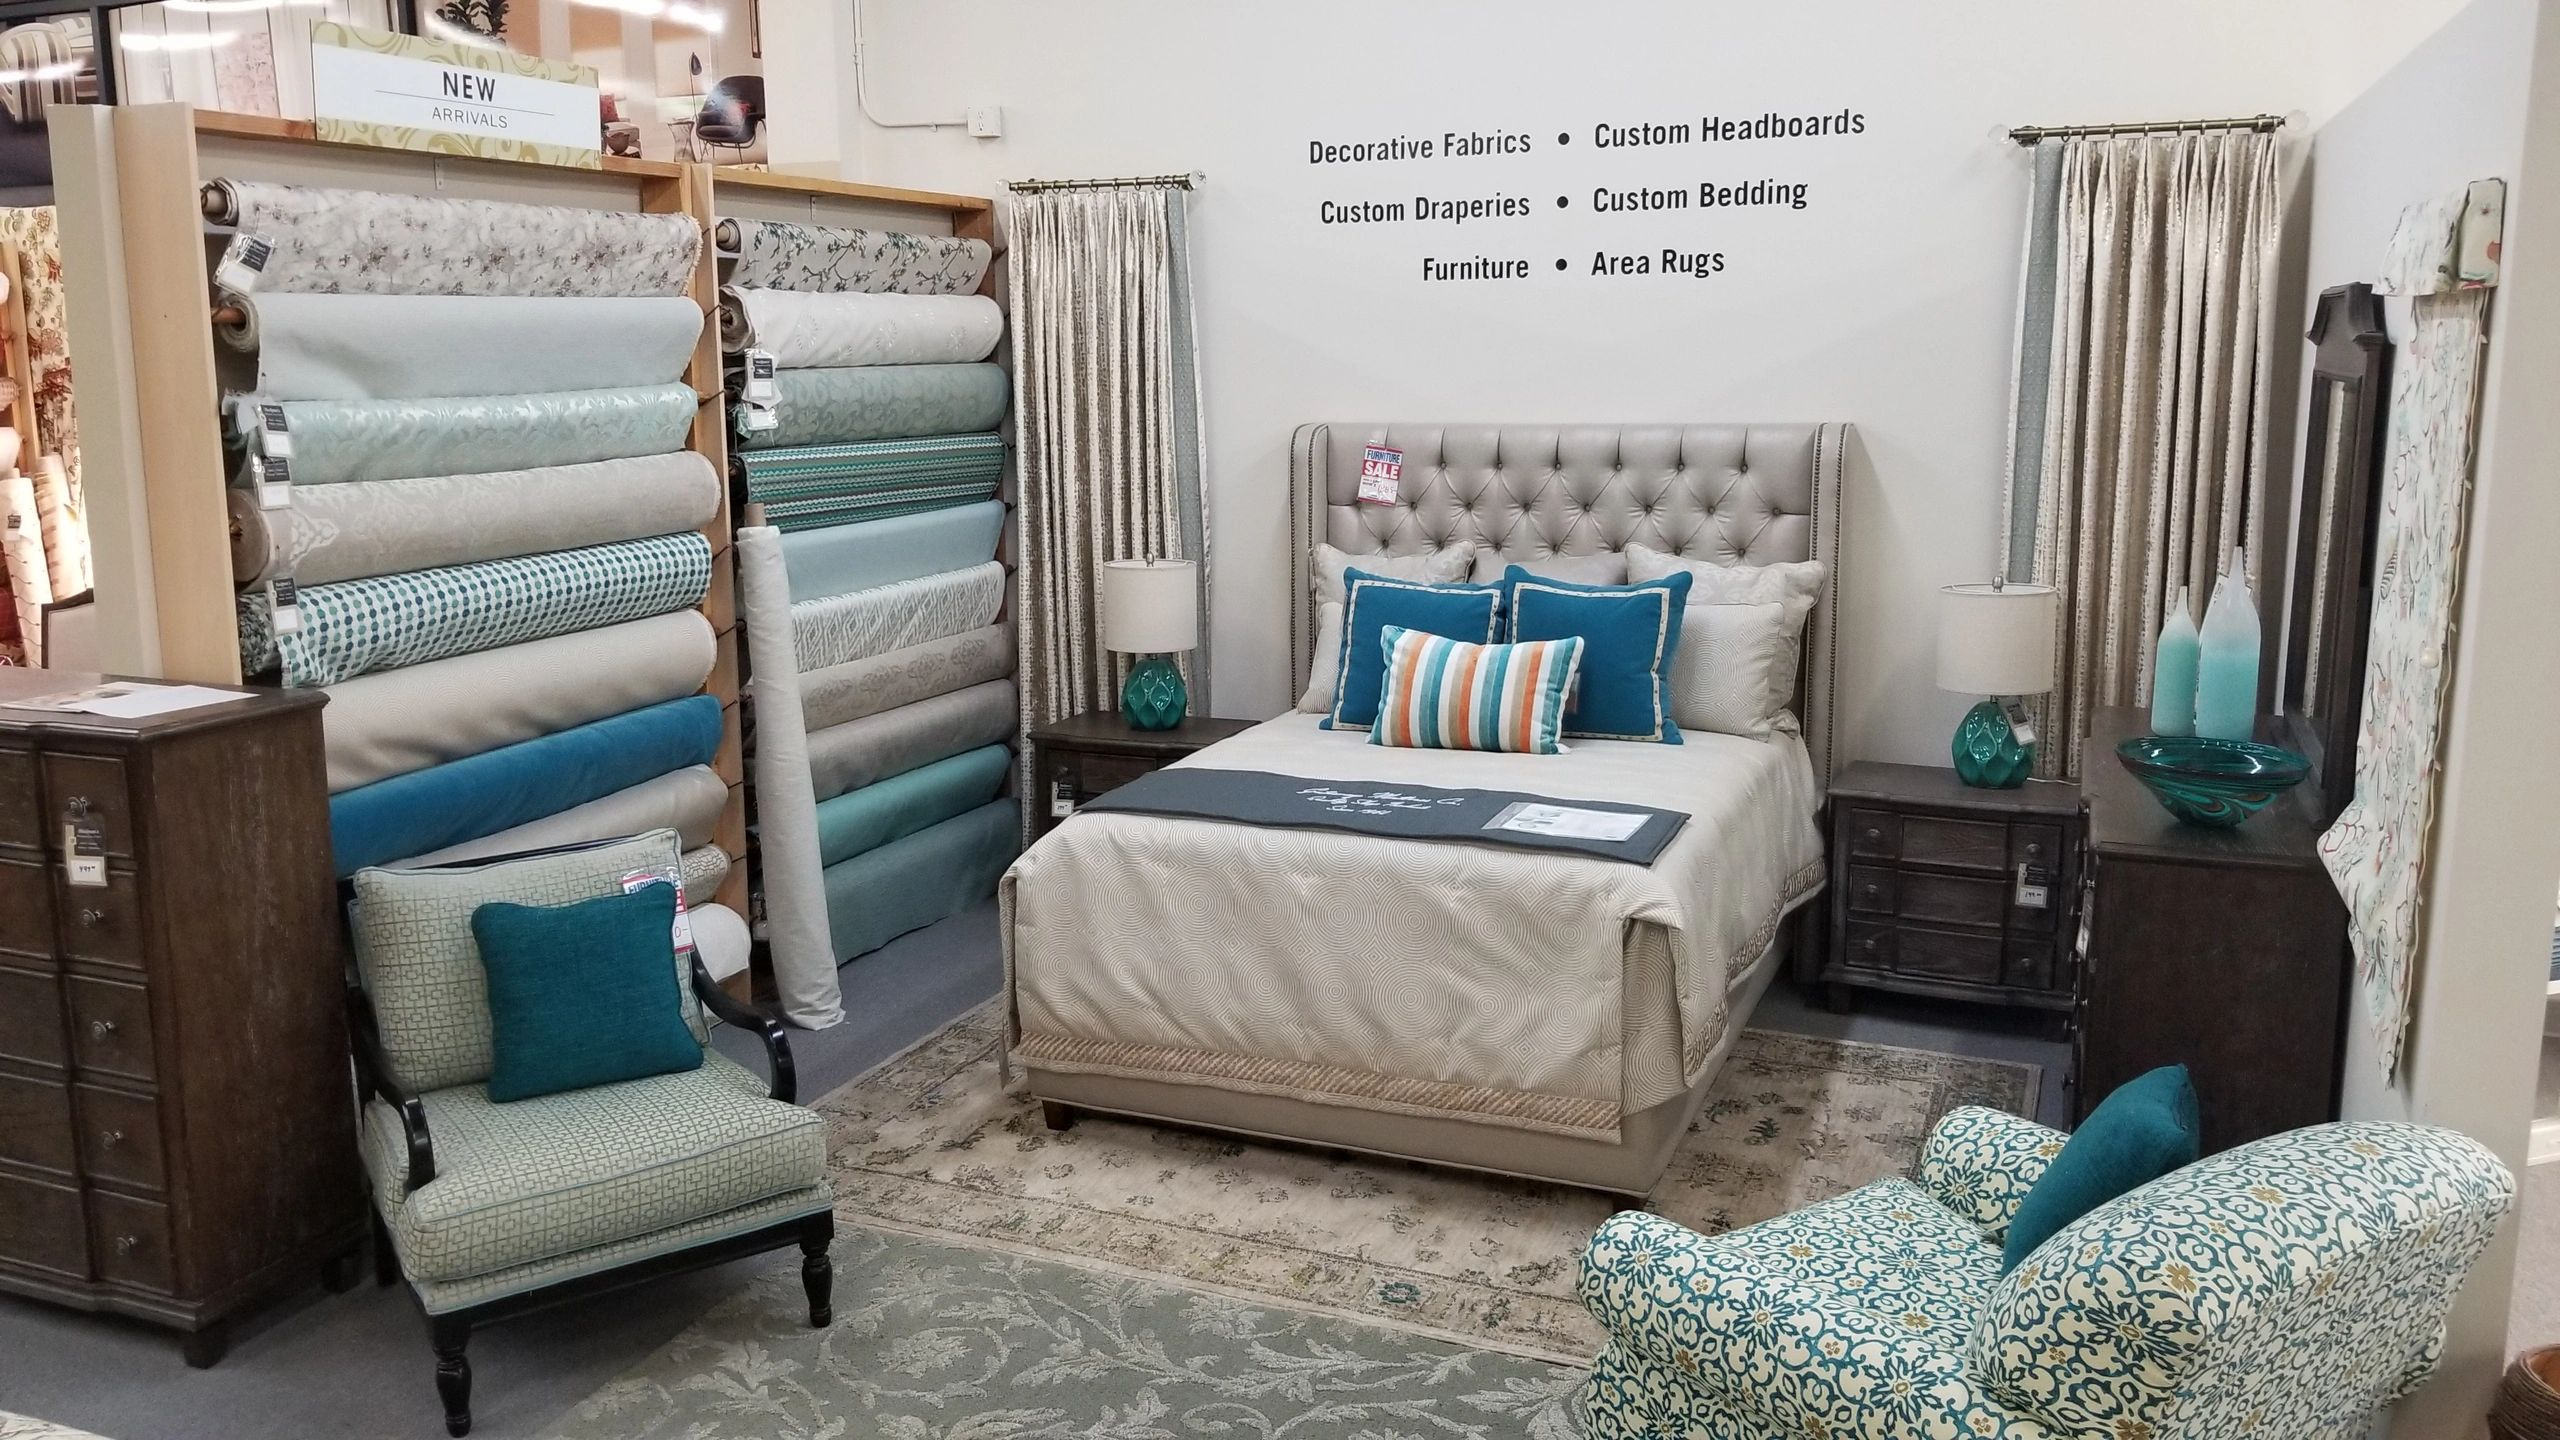 "{""blocks"":[{""key"":""9g9a5"",""text"":""From headboards to bed linens and accessories, we can completely redress your existing bed or create a new look entirely! "",""type"":""unstyled"",""depth"":0,""inlineStyleRanges"":[{""offset"":0,""length"":121,""style"":""BOLD""}],""entityRanges"":[],""data"":{}}],""entityMap"":{}}"